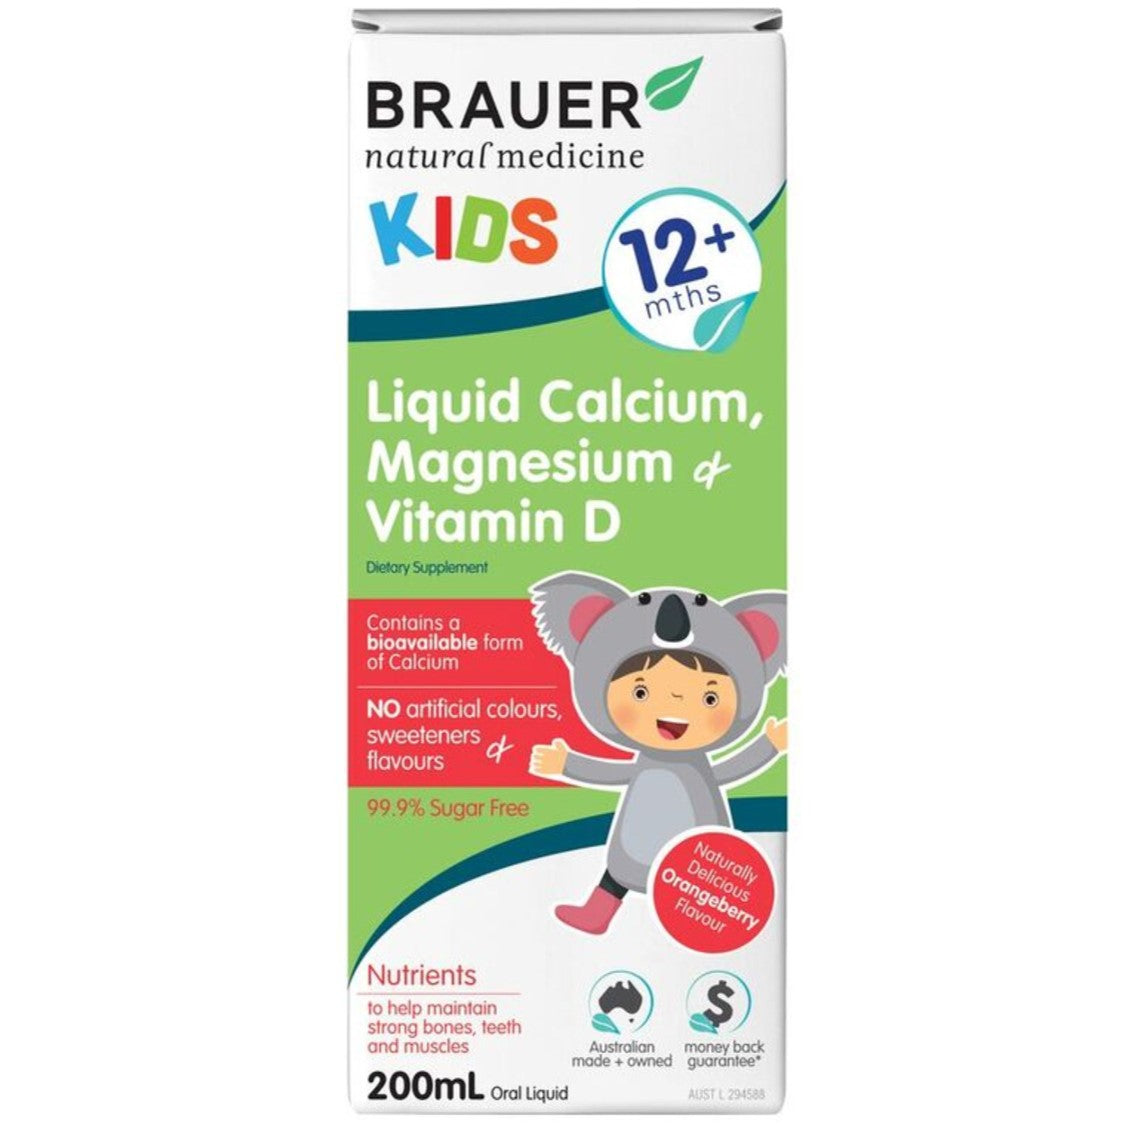 Brauer Kids Liquid Calcium, Magnesium and Vitamin D, 200ml.-NaturesWisdom